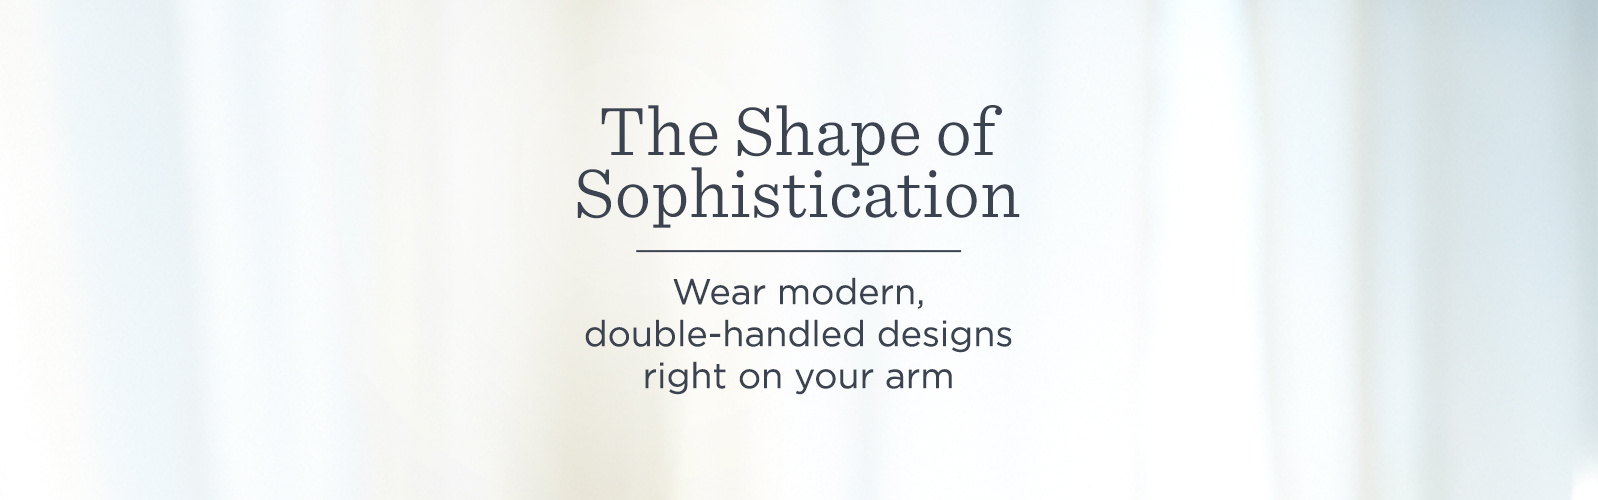 The Shape of Sophistication  Wear modern, double-handled designs right on your arm